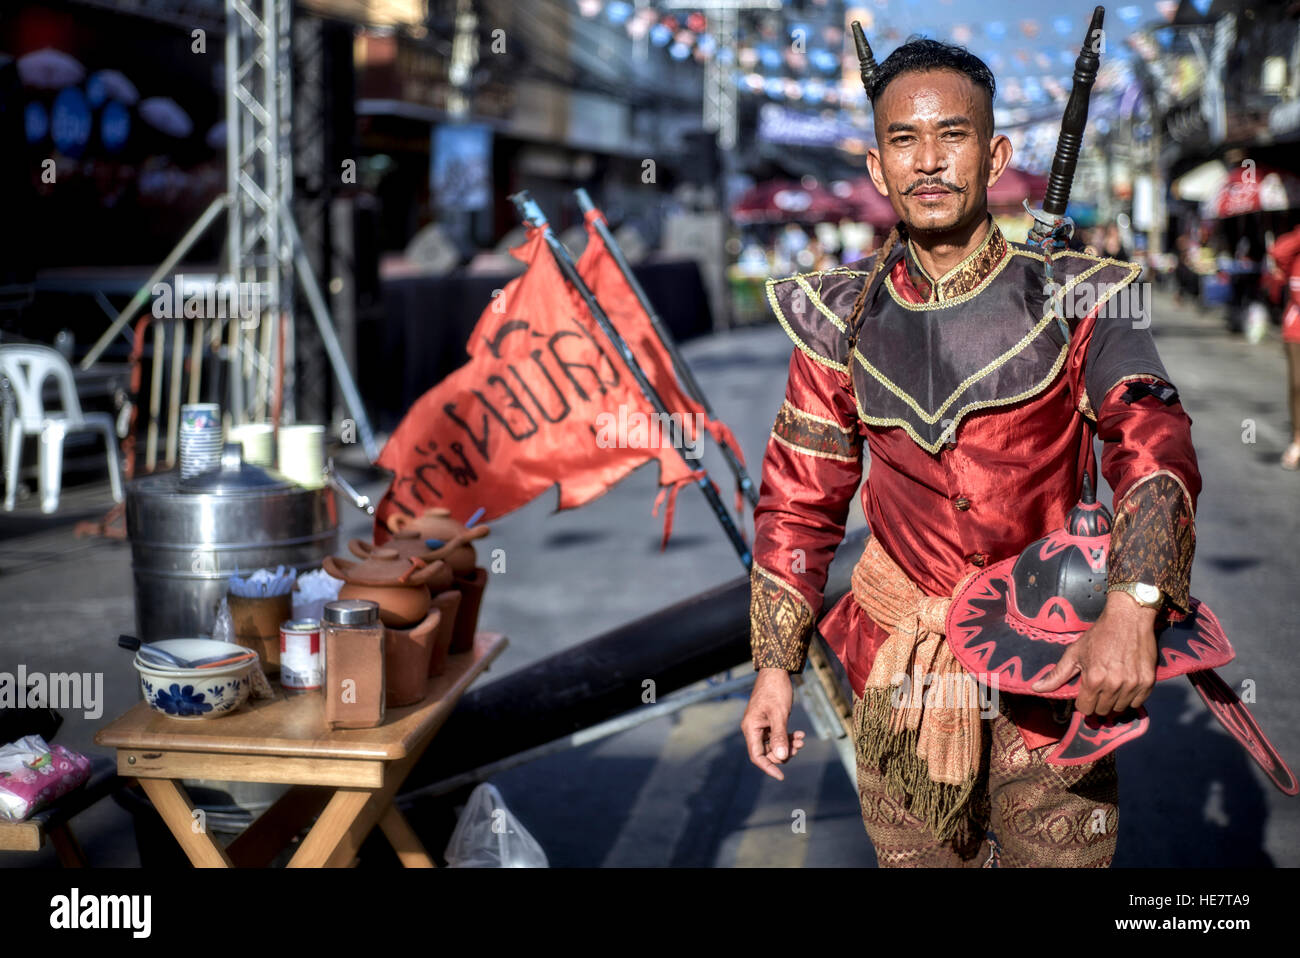 Thailand man dressed in traditional medieval ancient warrior costume during a Thailand street festival. S. E. Asia. - Stock Image